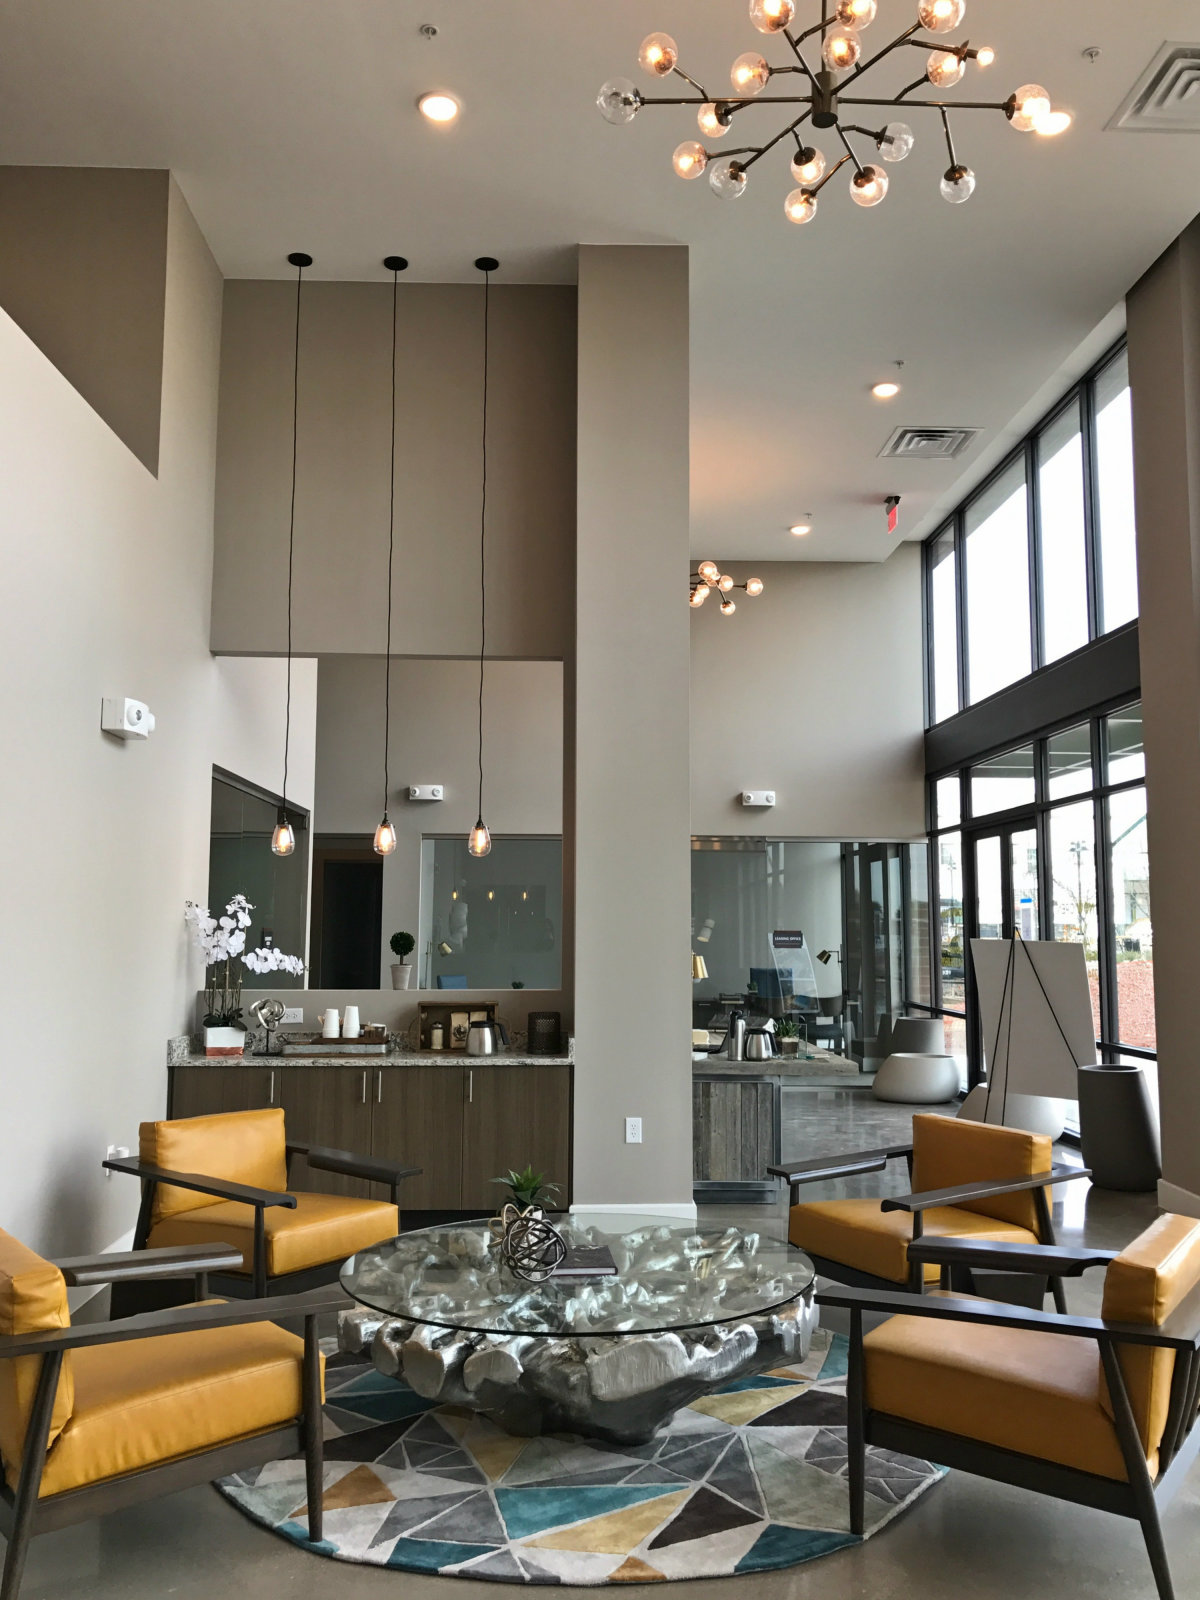 Harvest Lofts lobby